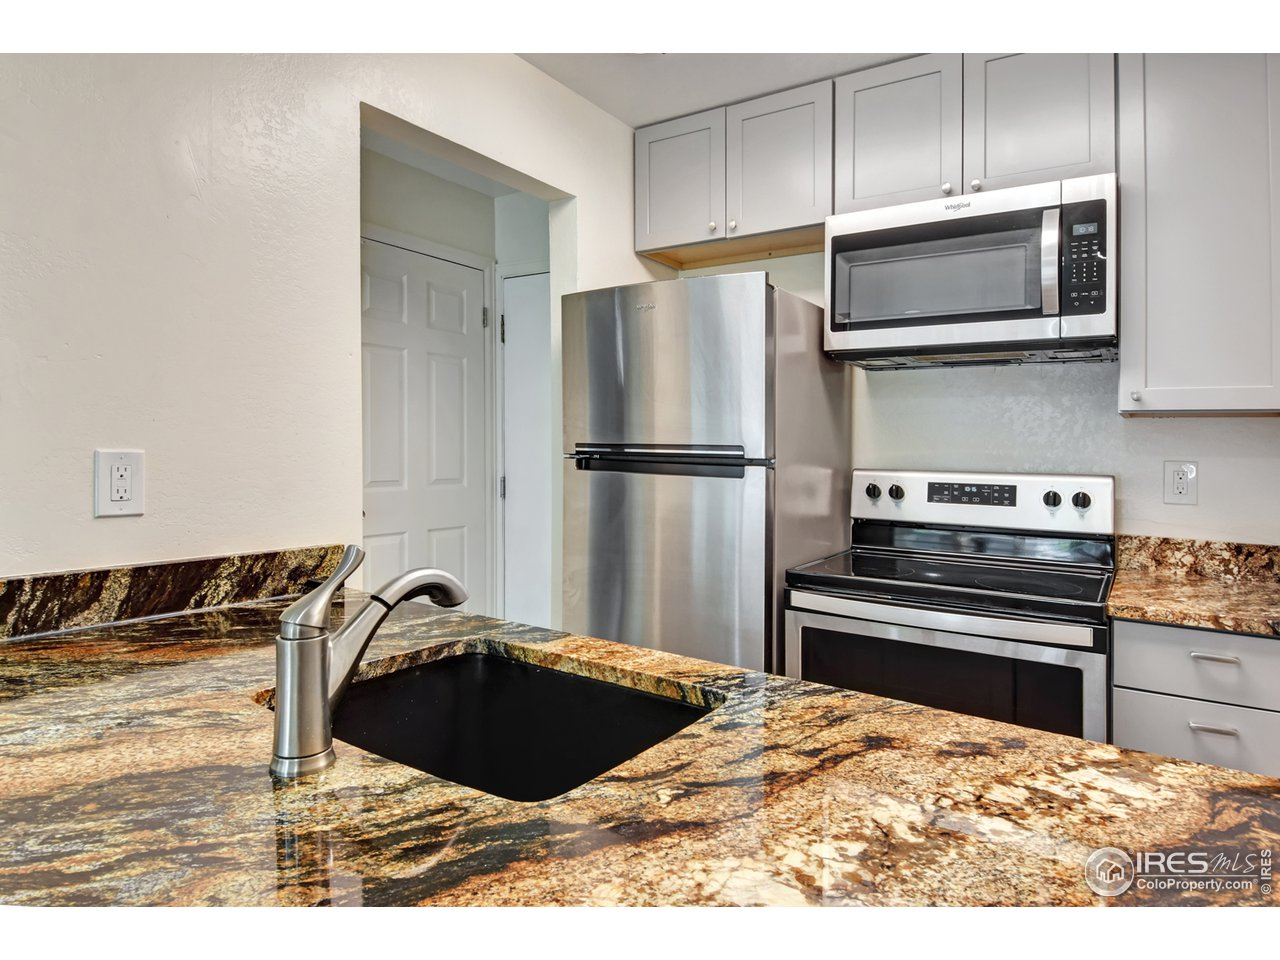 New Granite countertops and Stainless Appliances